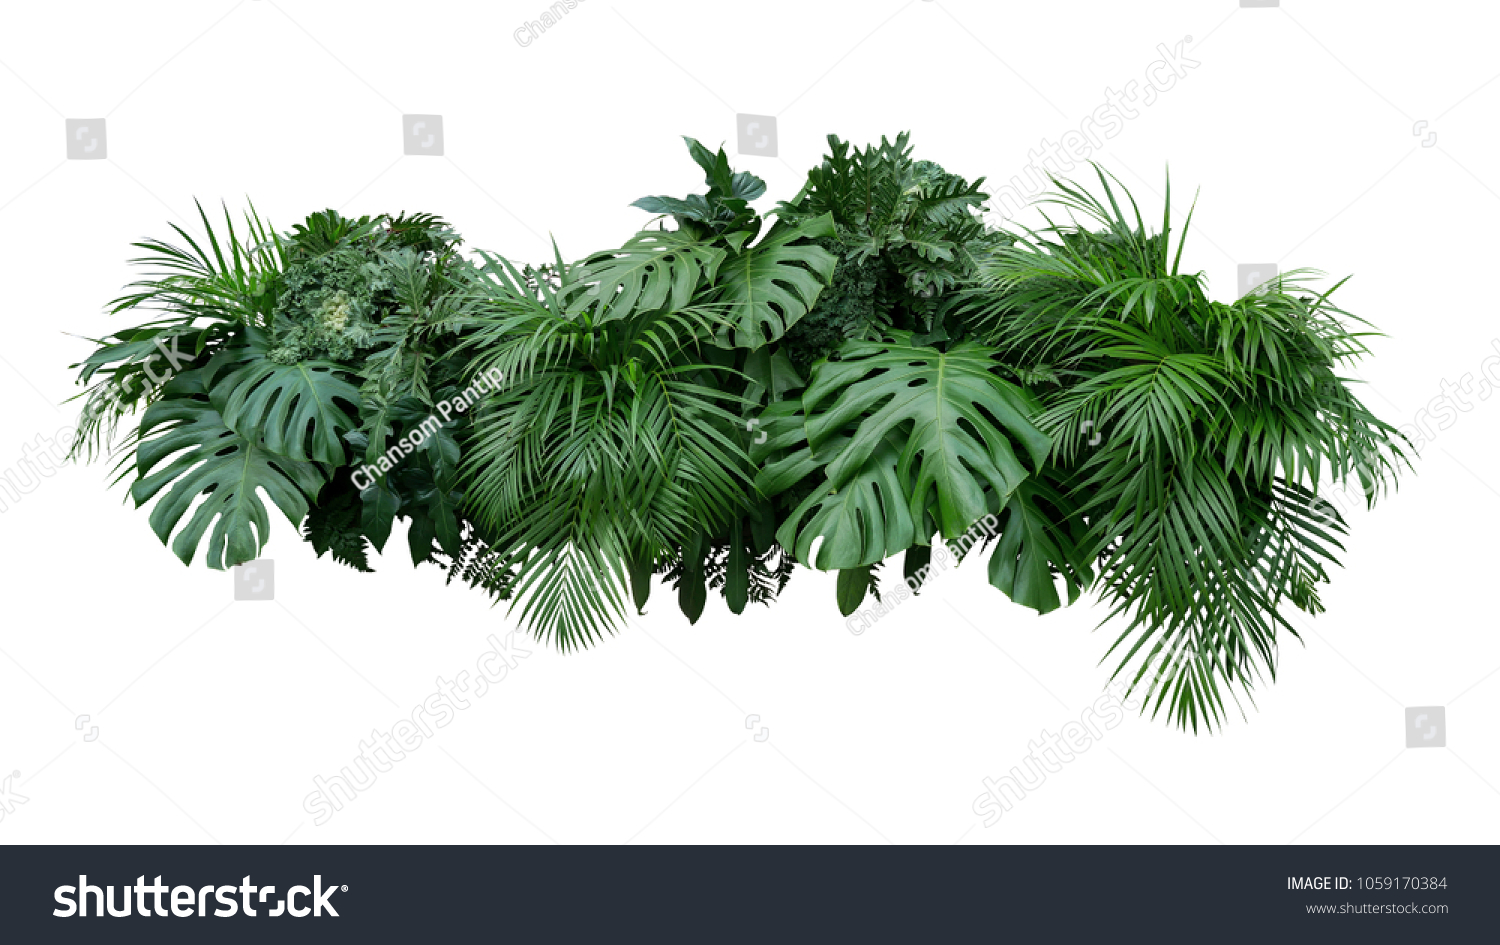 Tropical leaves foliage plant bush floral arrangement nature backdrop isolated on white background, clipping path included. #1059170384